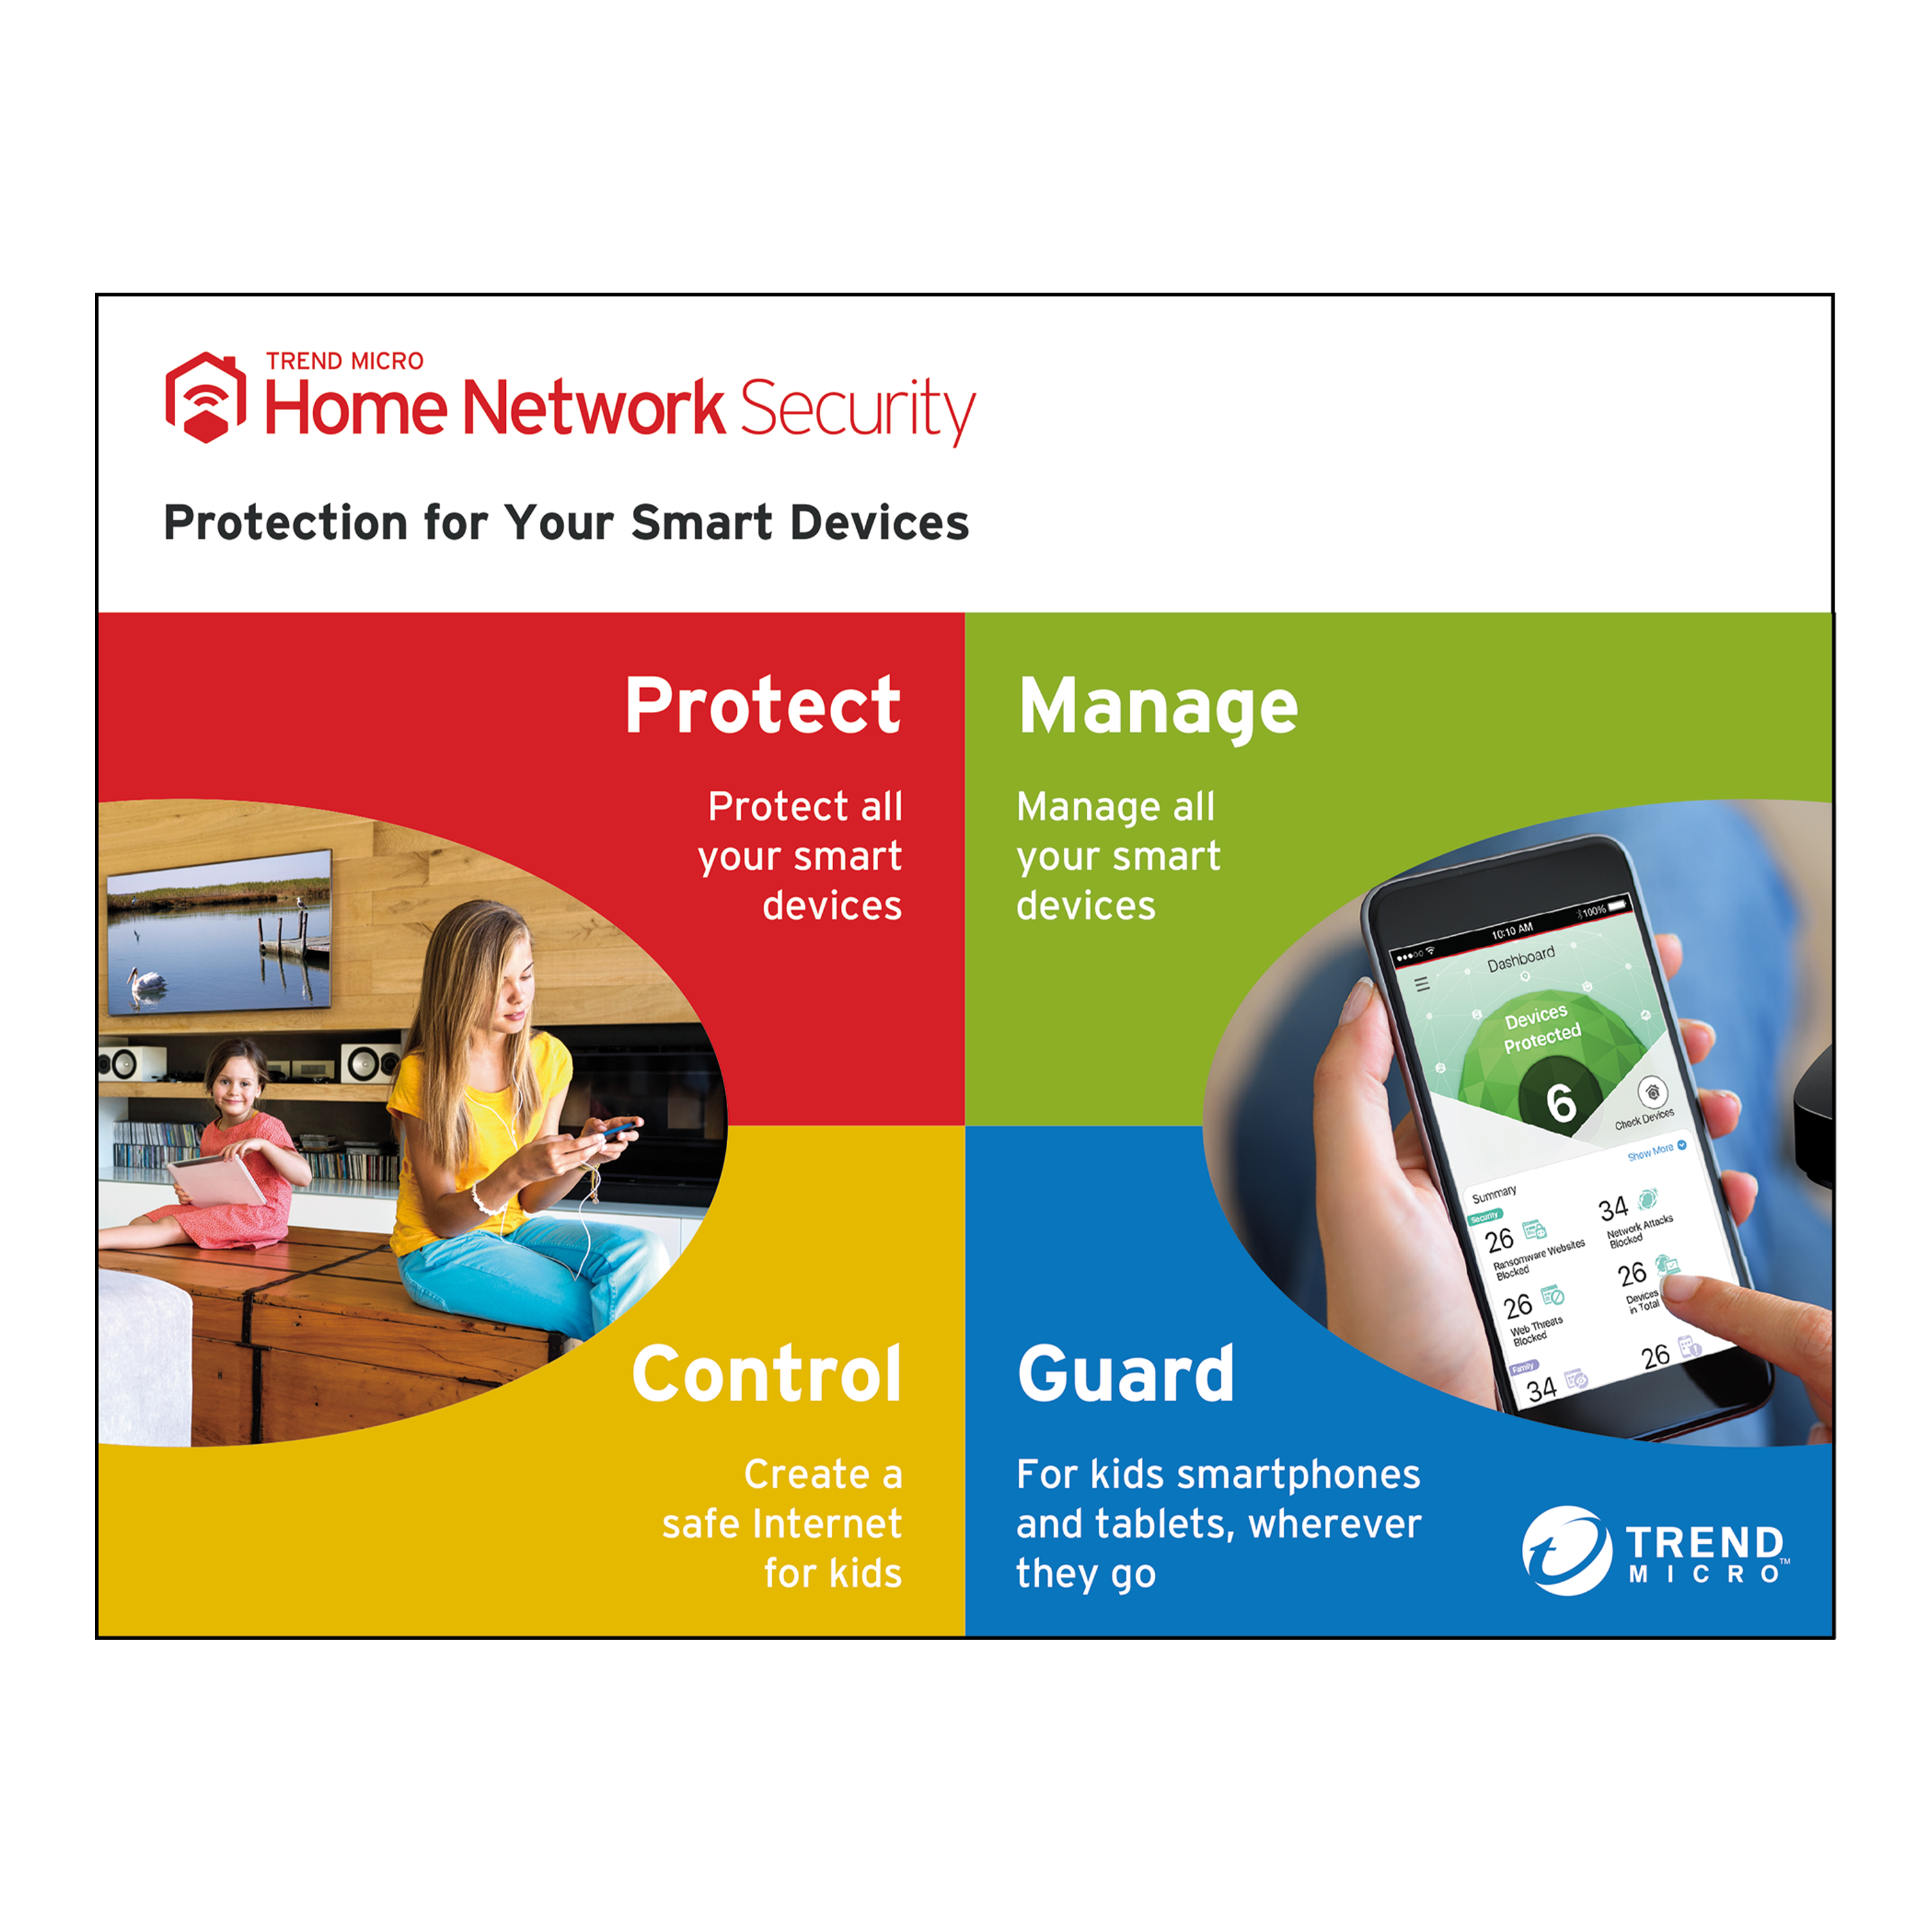 Trend Micro Home Network Security